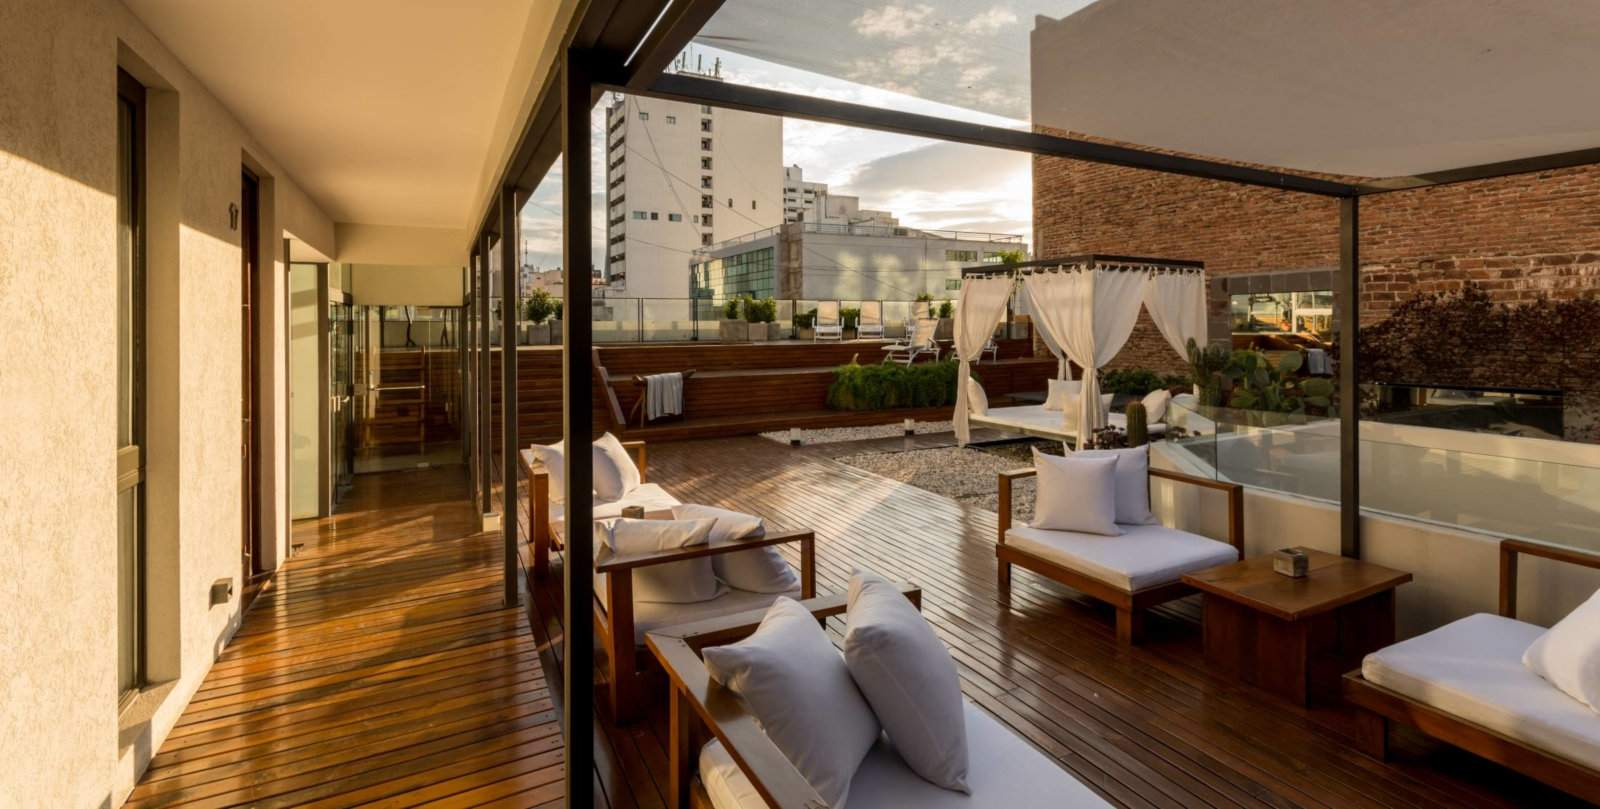 Our favourite gay hotel in Córdoba is Azur Real with it's gorgeous rooftop terrace.